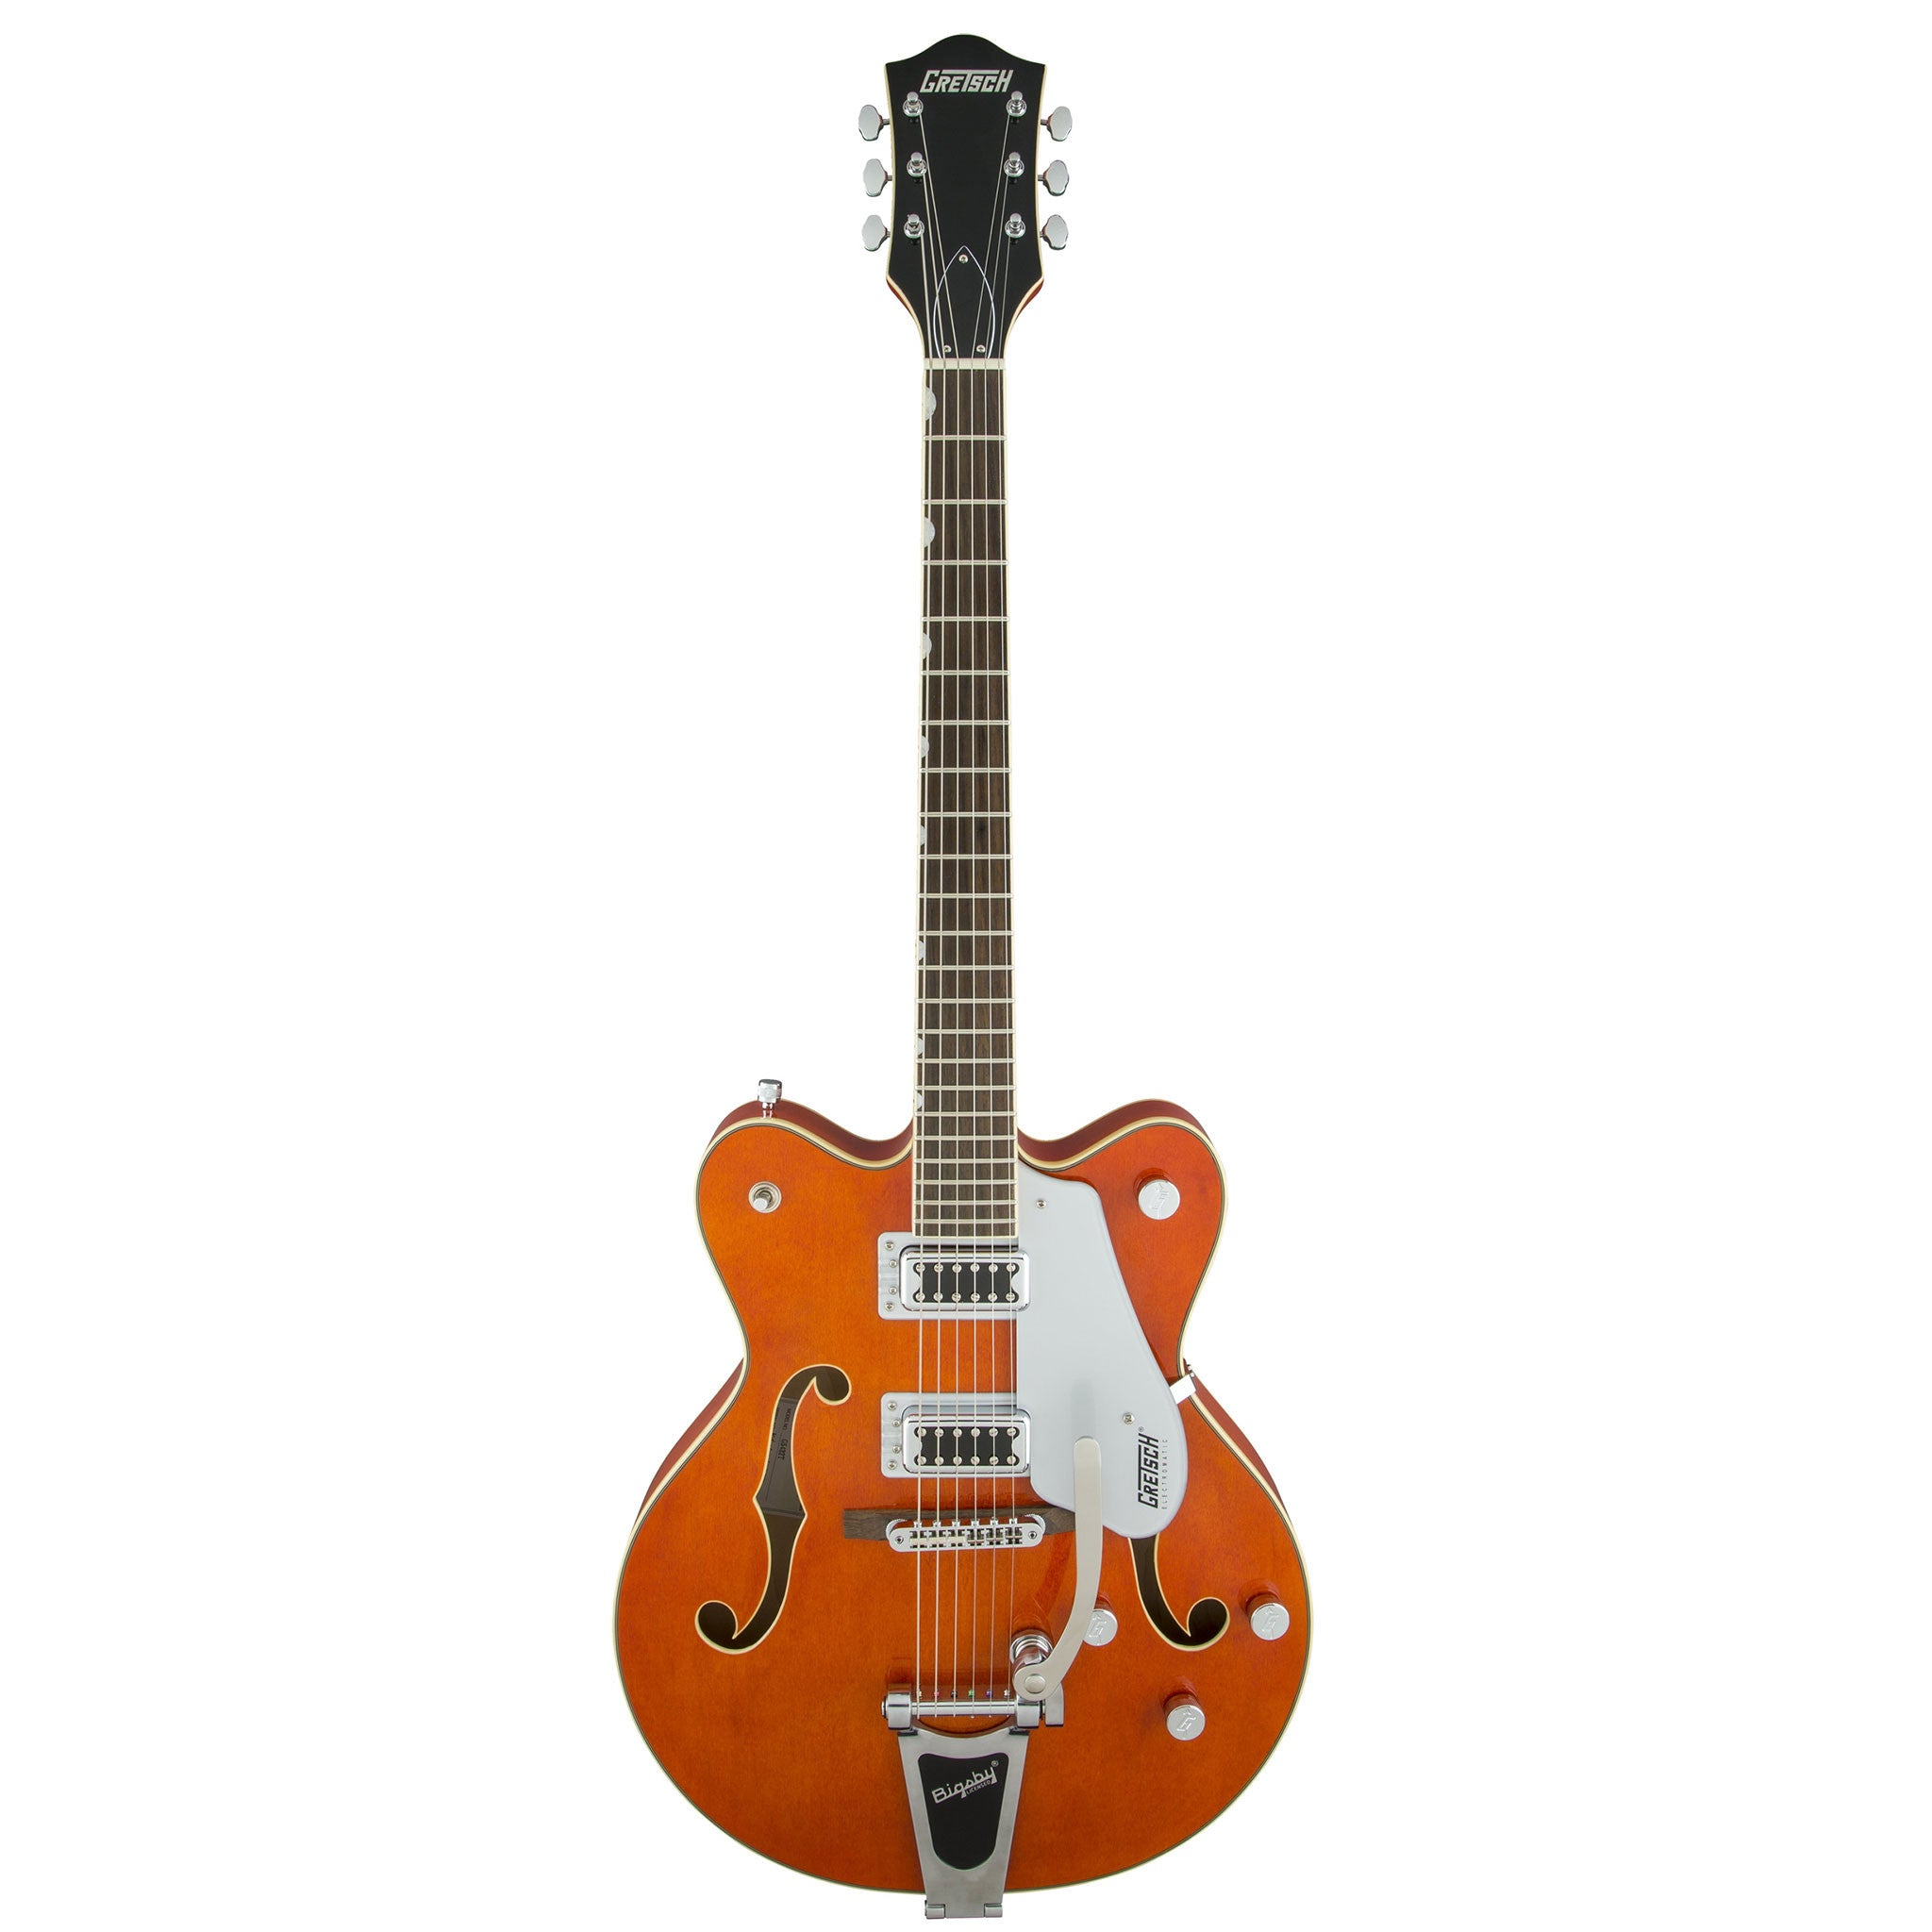 gretsch electric guitars g5422t electromatic orange stain mass street music store. Black Bedroom Furniture Sets. Home Design Ideas